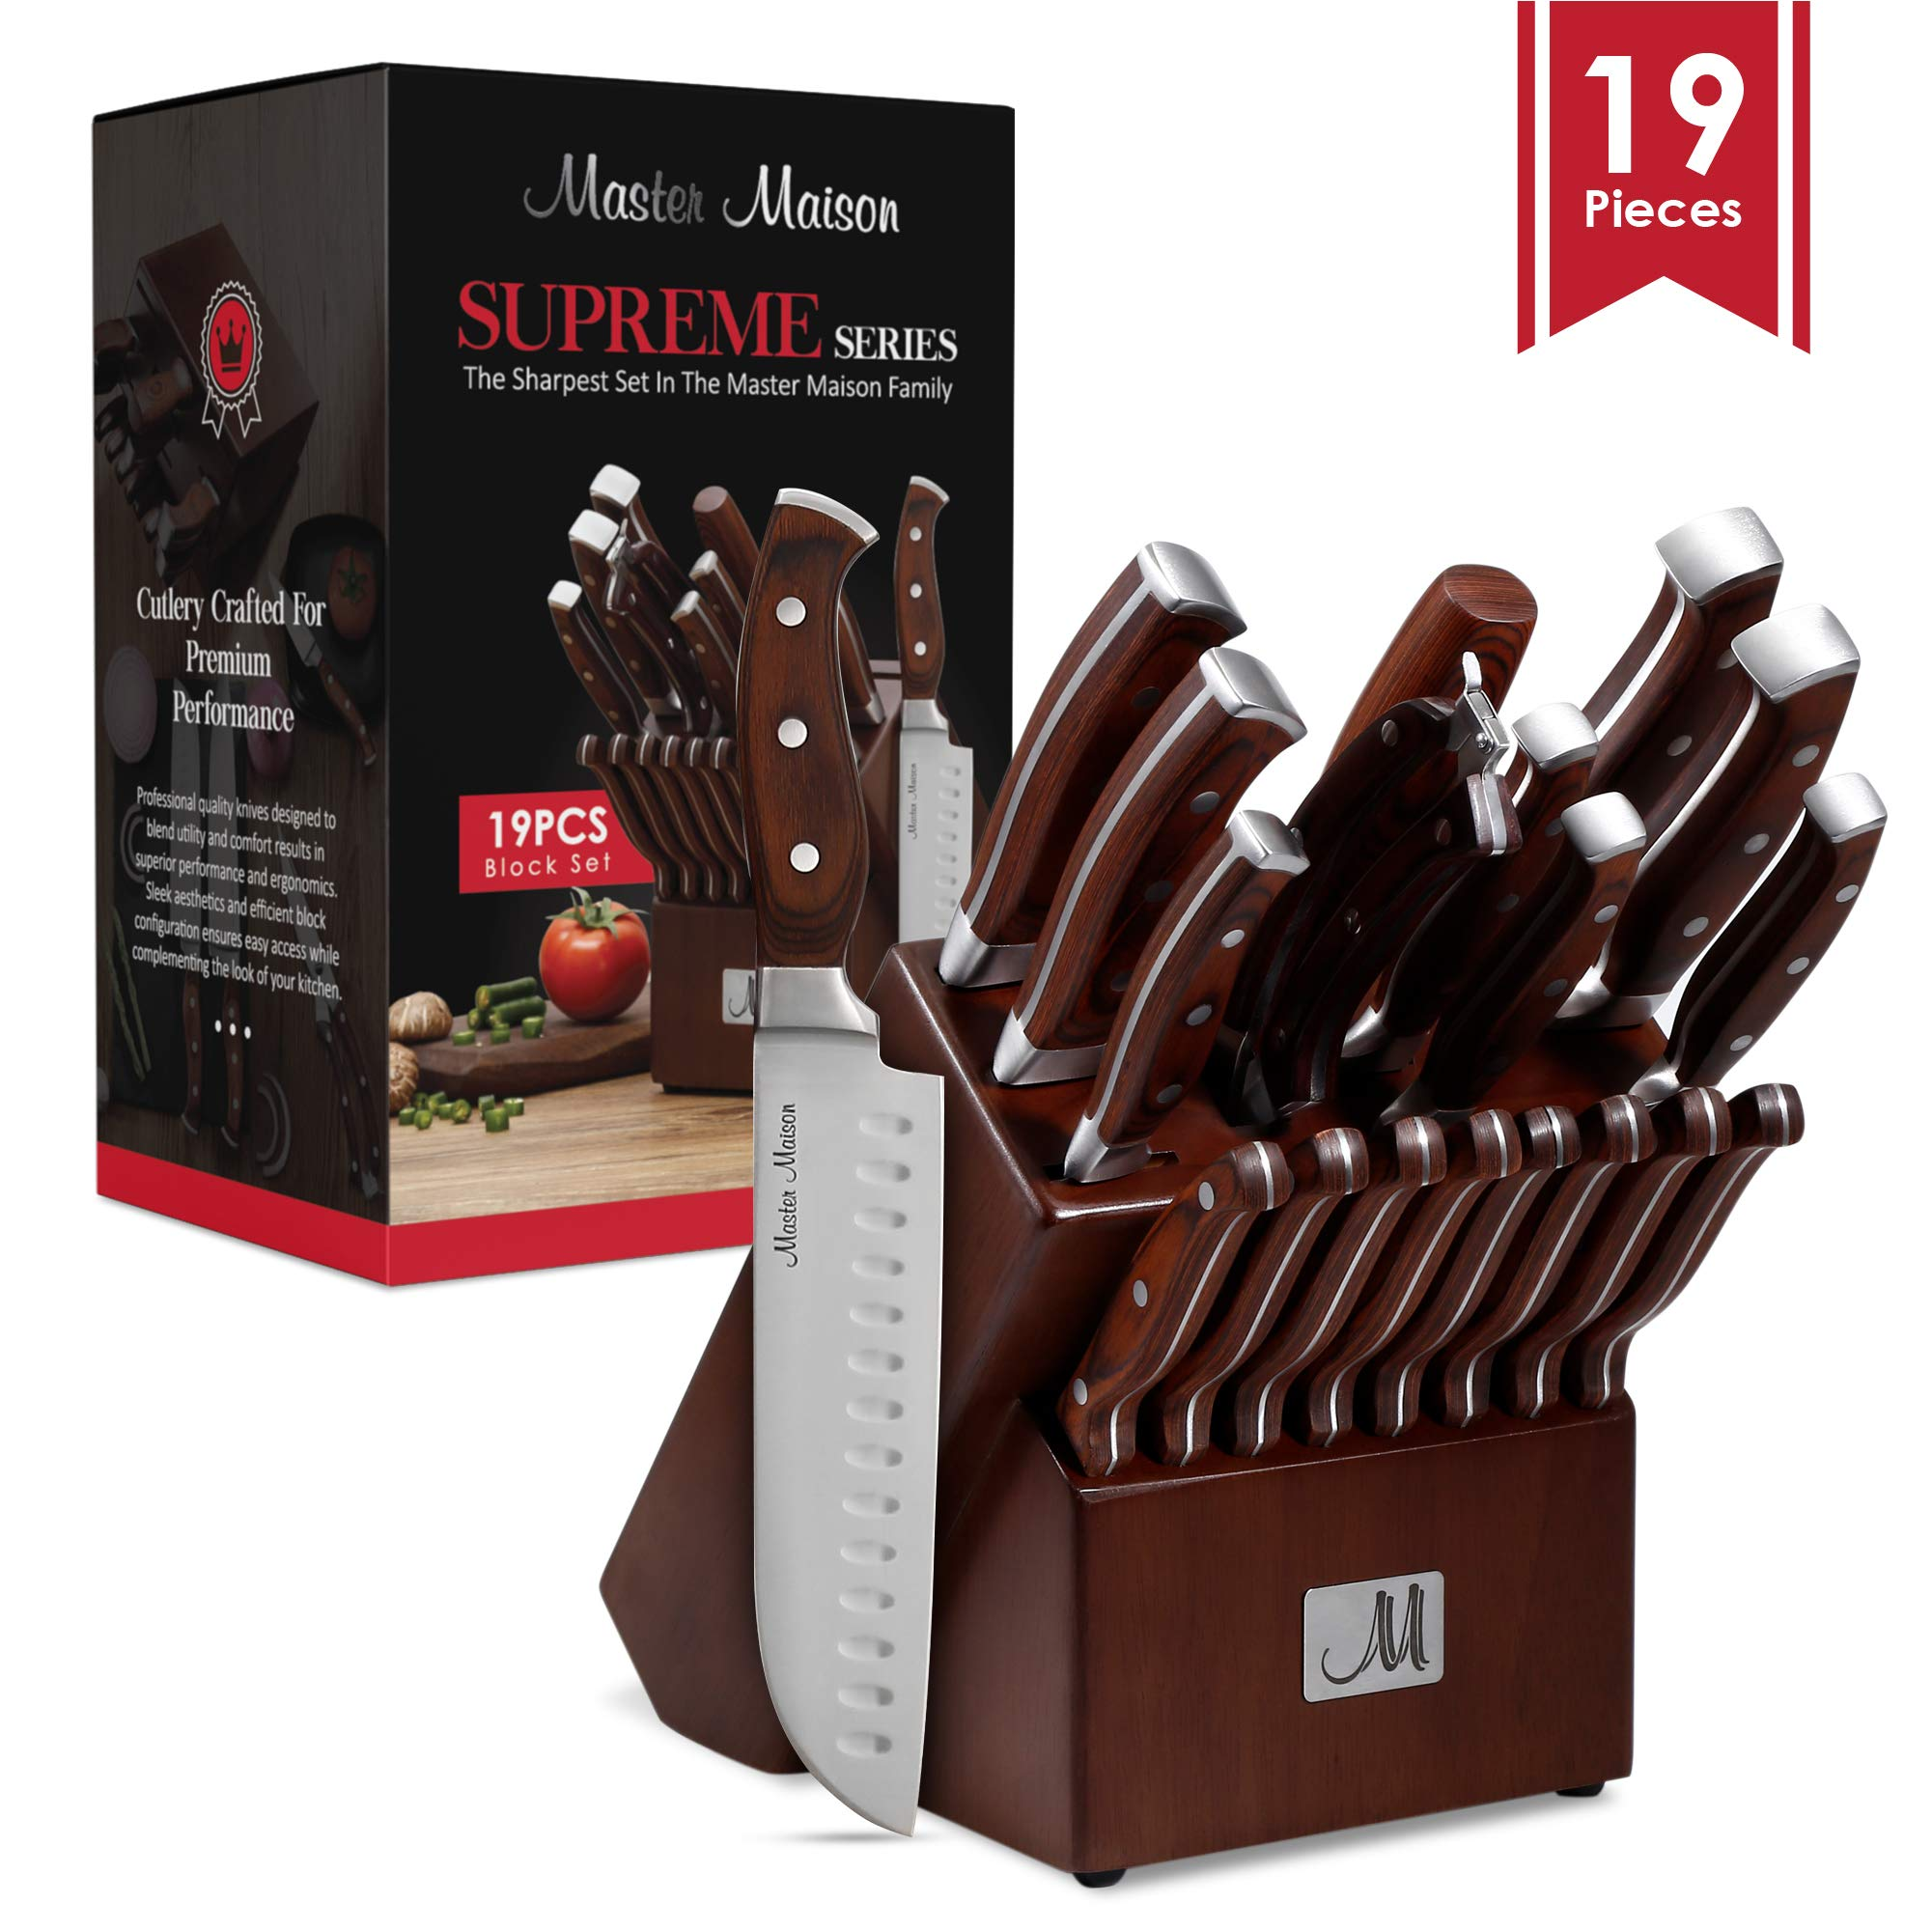 19-Piece Premium Kitchen Knife Set With Wooden Block | Master Maison German Stainless Steel Cutlery With Knife Sharpener & 8 Steak Knives by Master Maison